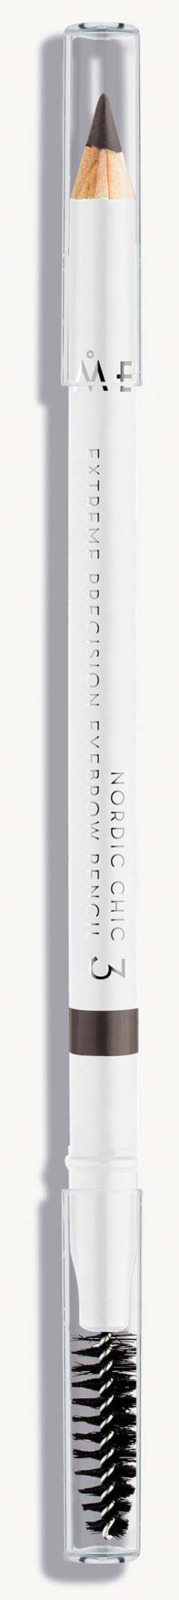 Карандаш для бровей Lumene Nordic Chic, №03, 1.2 г lumene nordic chic under eye concealer